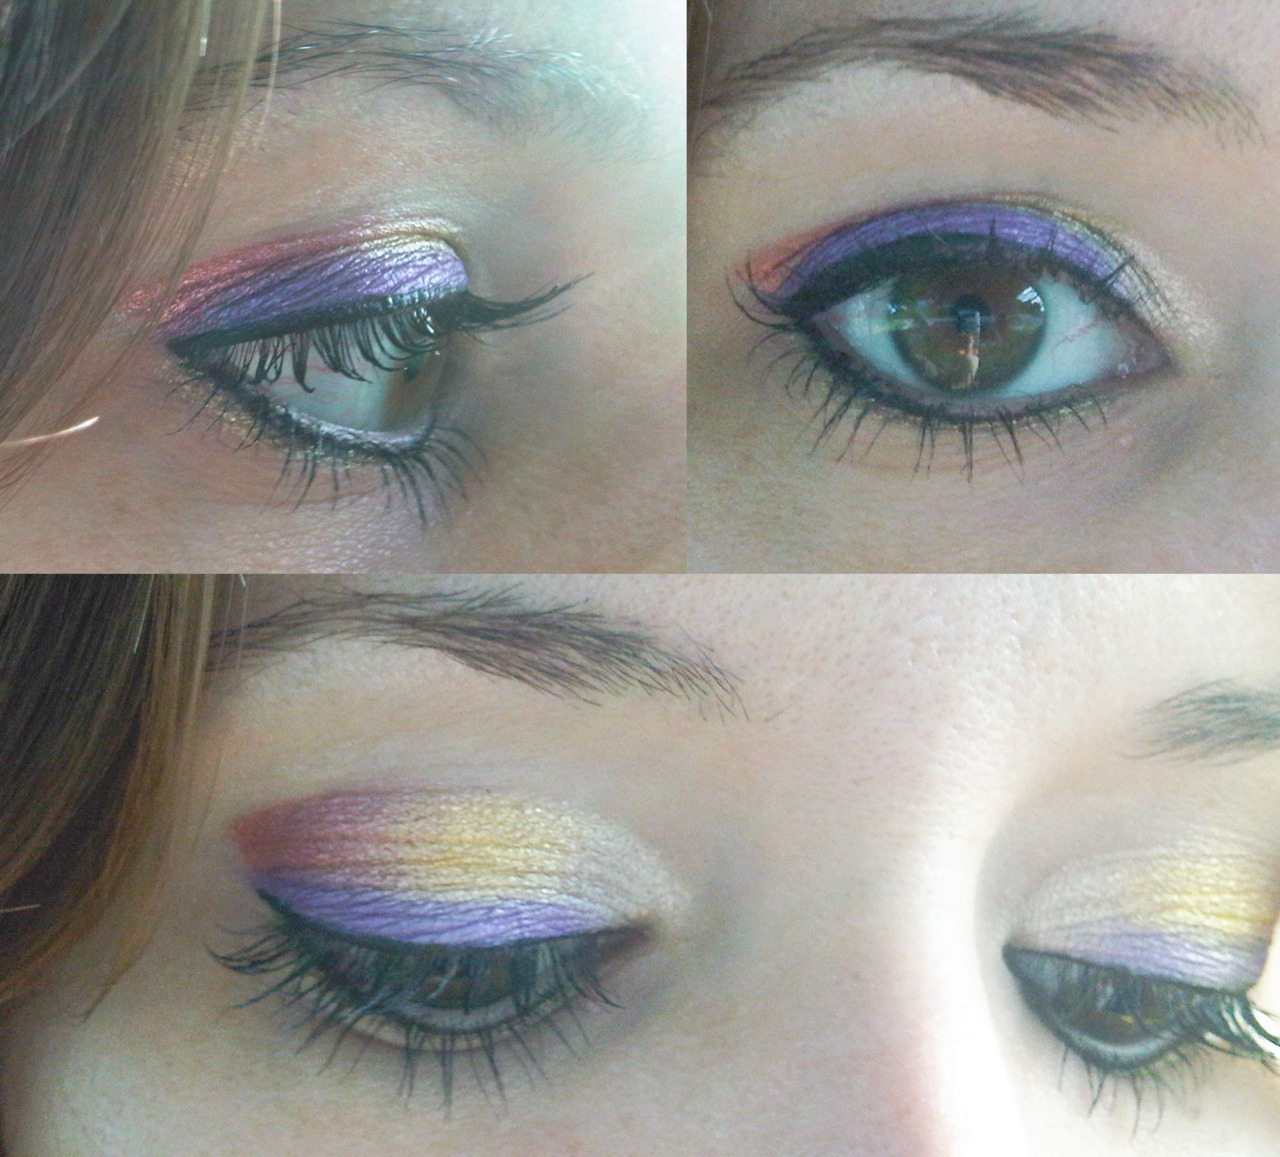 Today's Theme: Sunset in Rio Used: NYX Jumbo Eye Pencil in Cottage Cheese, NYX Loose Pearl Eyeshadows in Fanta Pearl and Yellow Pearl, Urban Decay Peacock Pallet Flash (Purple), Physicians Formula Shimmer Strips in Vegas Strip (Top Strip-White), e.l.f. waterproof eyeliner pen in Black, Ulta eyeliner in Gold and Mabelline's The Falsies mascara.  (This was my first time using The Falsies and I was greatly disappointed.  It did not go on well, the brush was a disaster and it dried as hard as plastic.  I will not be using again!)